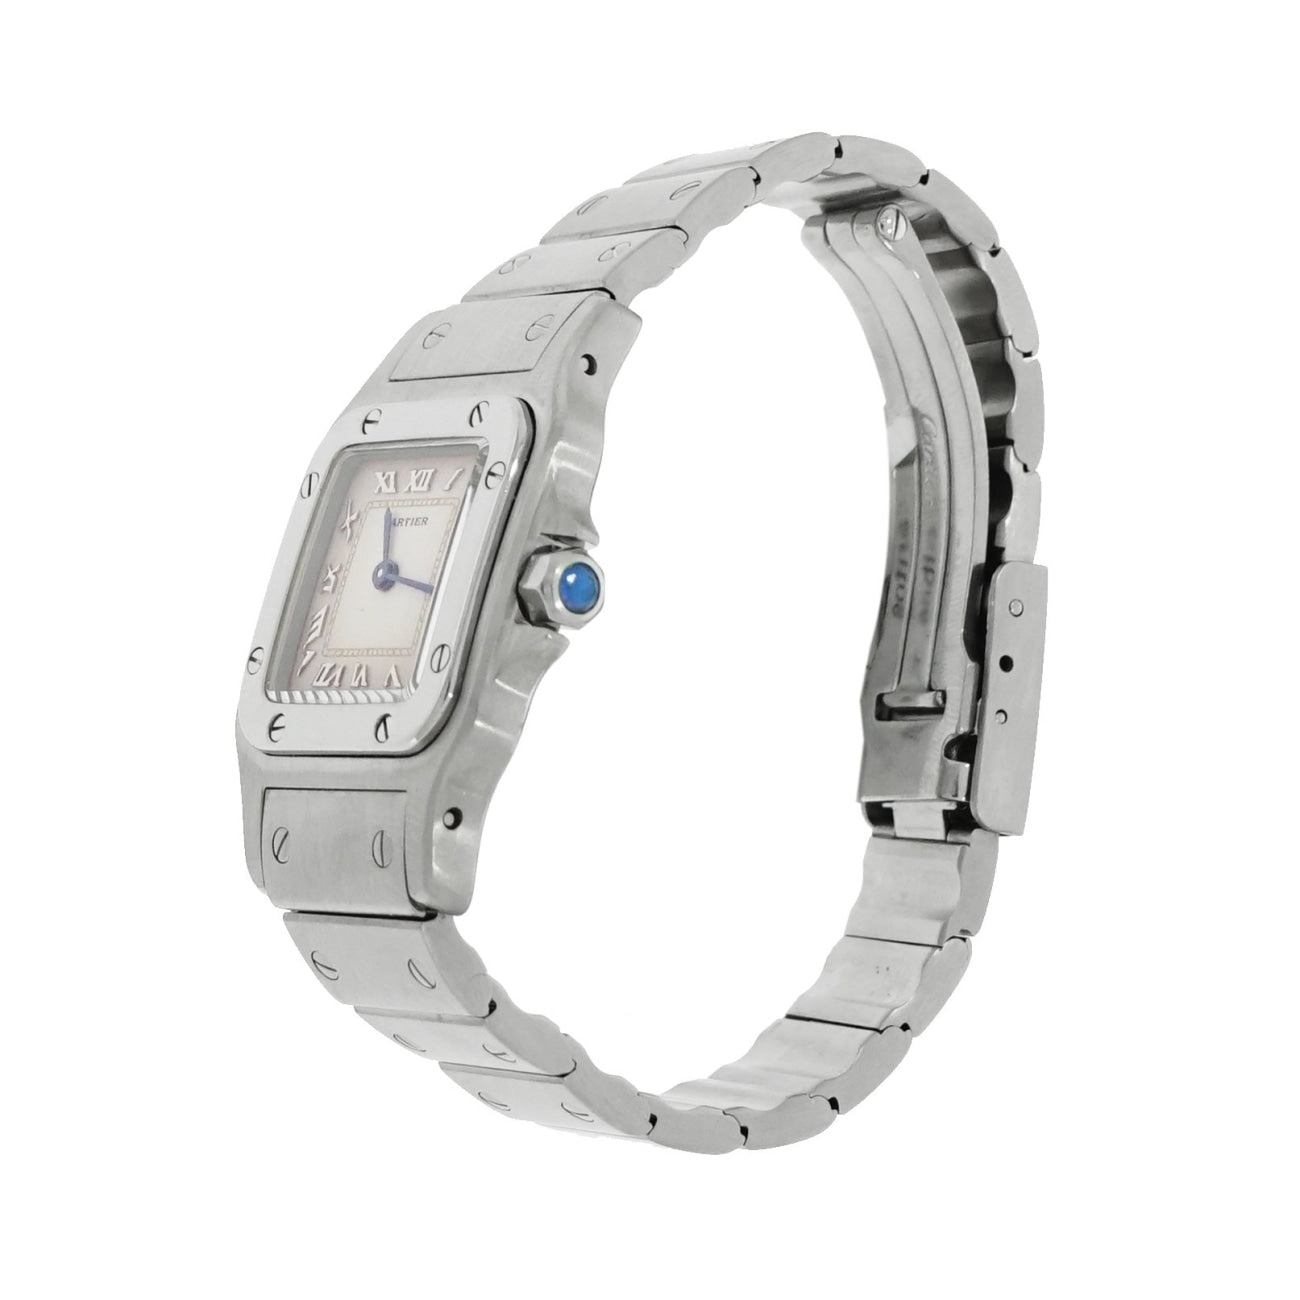 Pre-Owned Cartier Pre-Owned Watches - Cartier Santos Galbee 24mm Stainless Steel | Manfredi Jewels